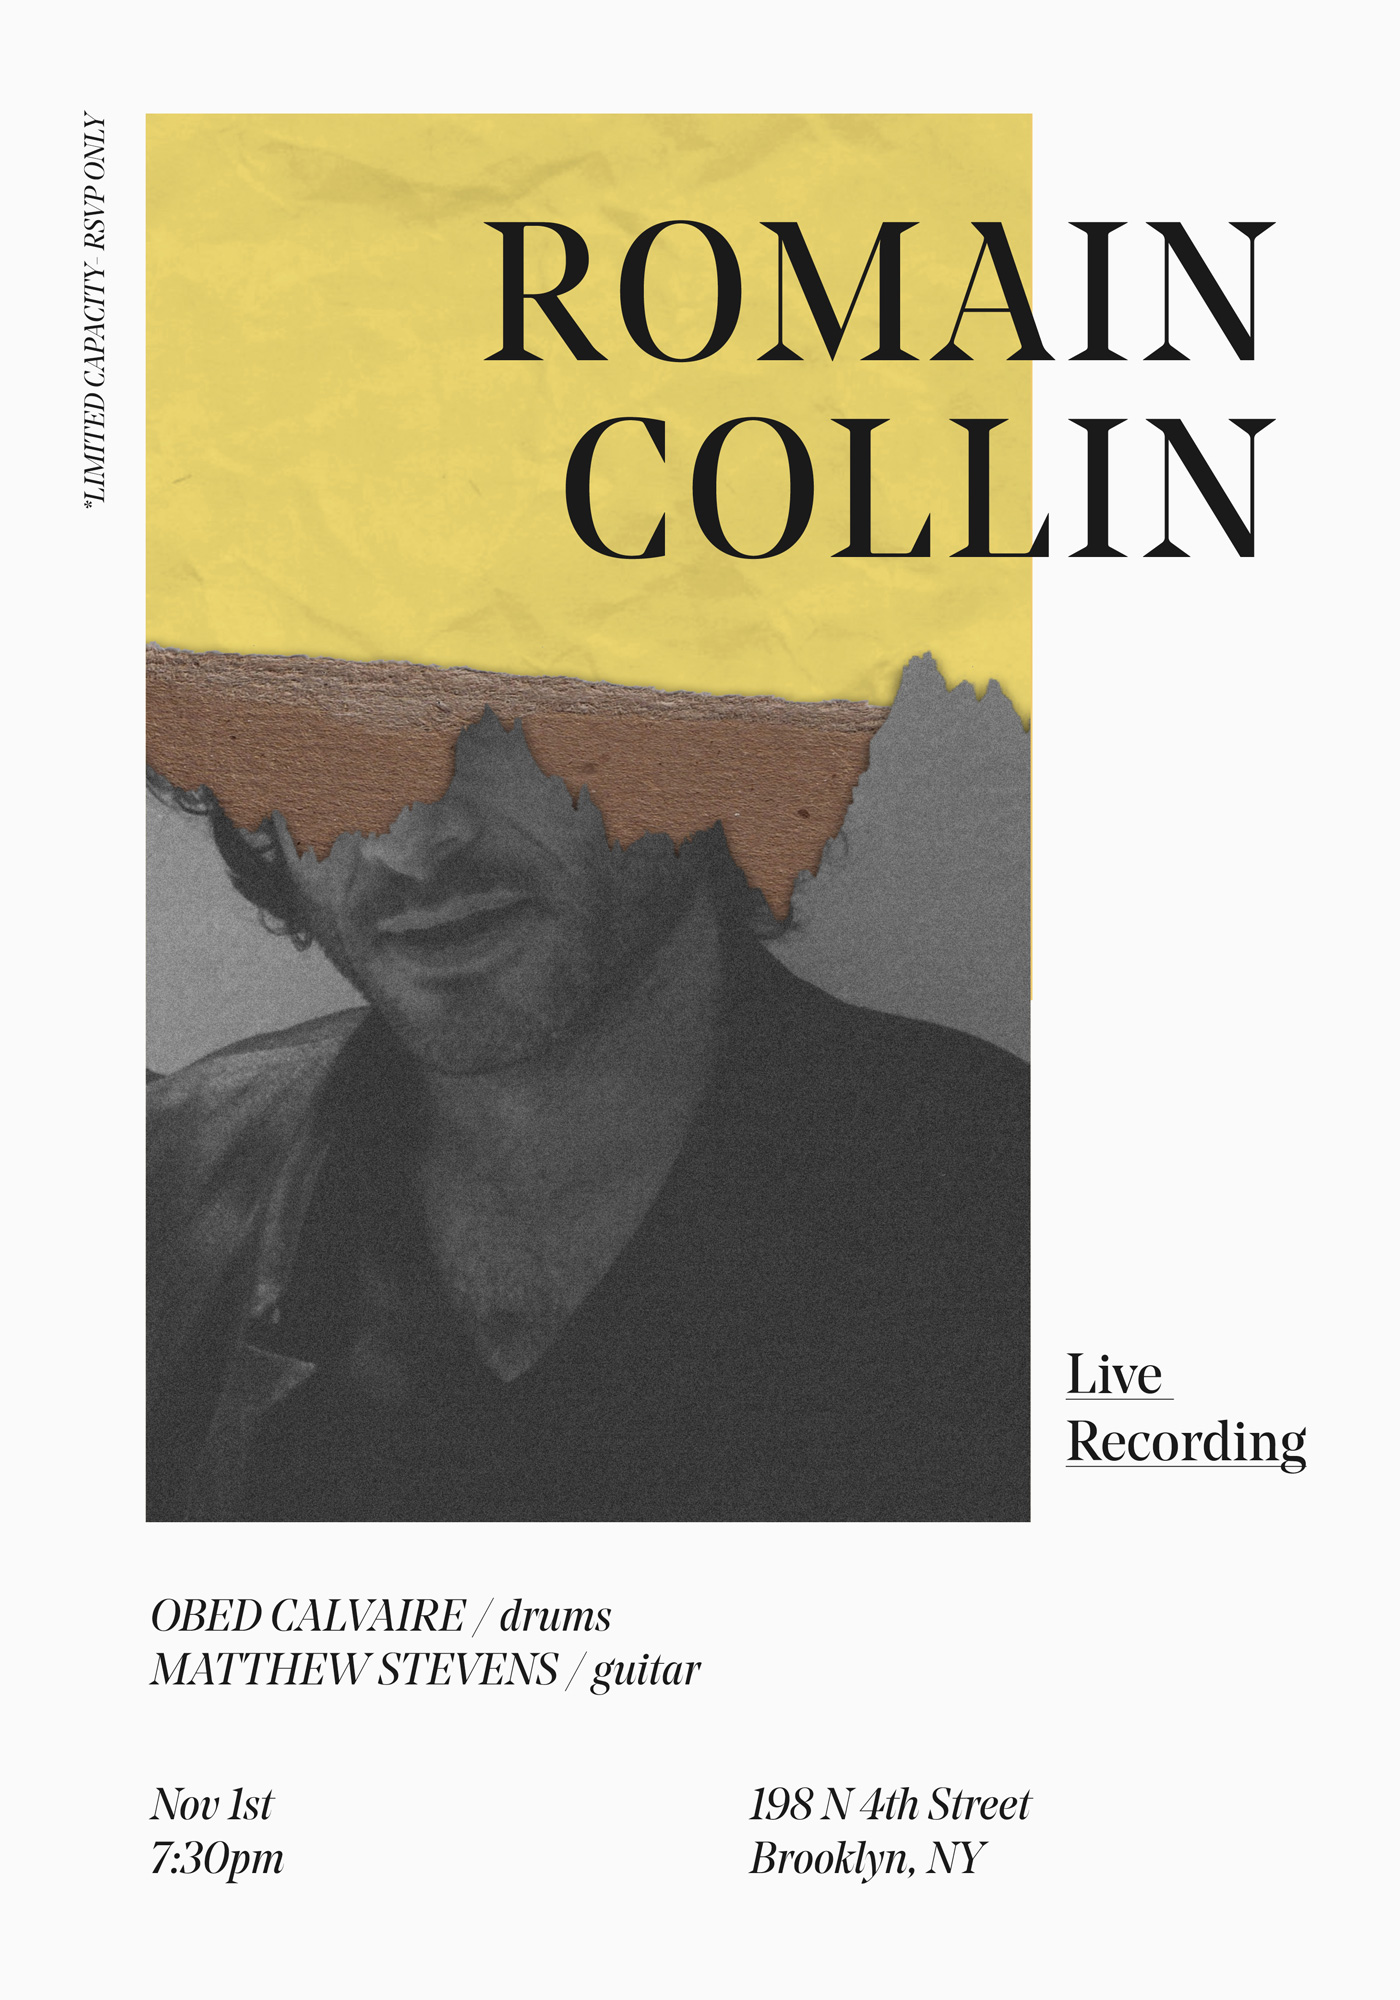 Romain Collin's series